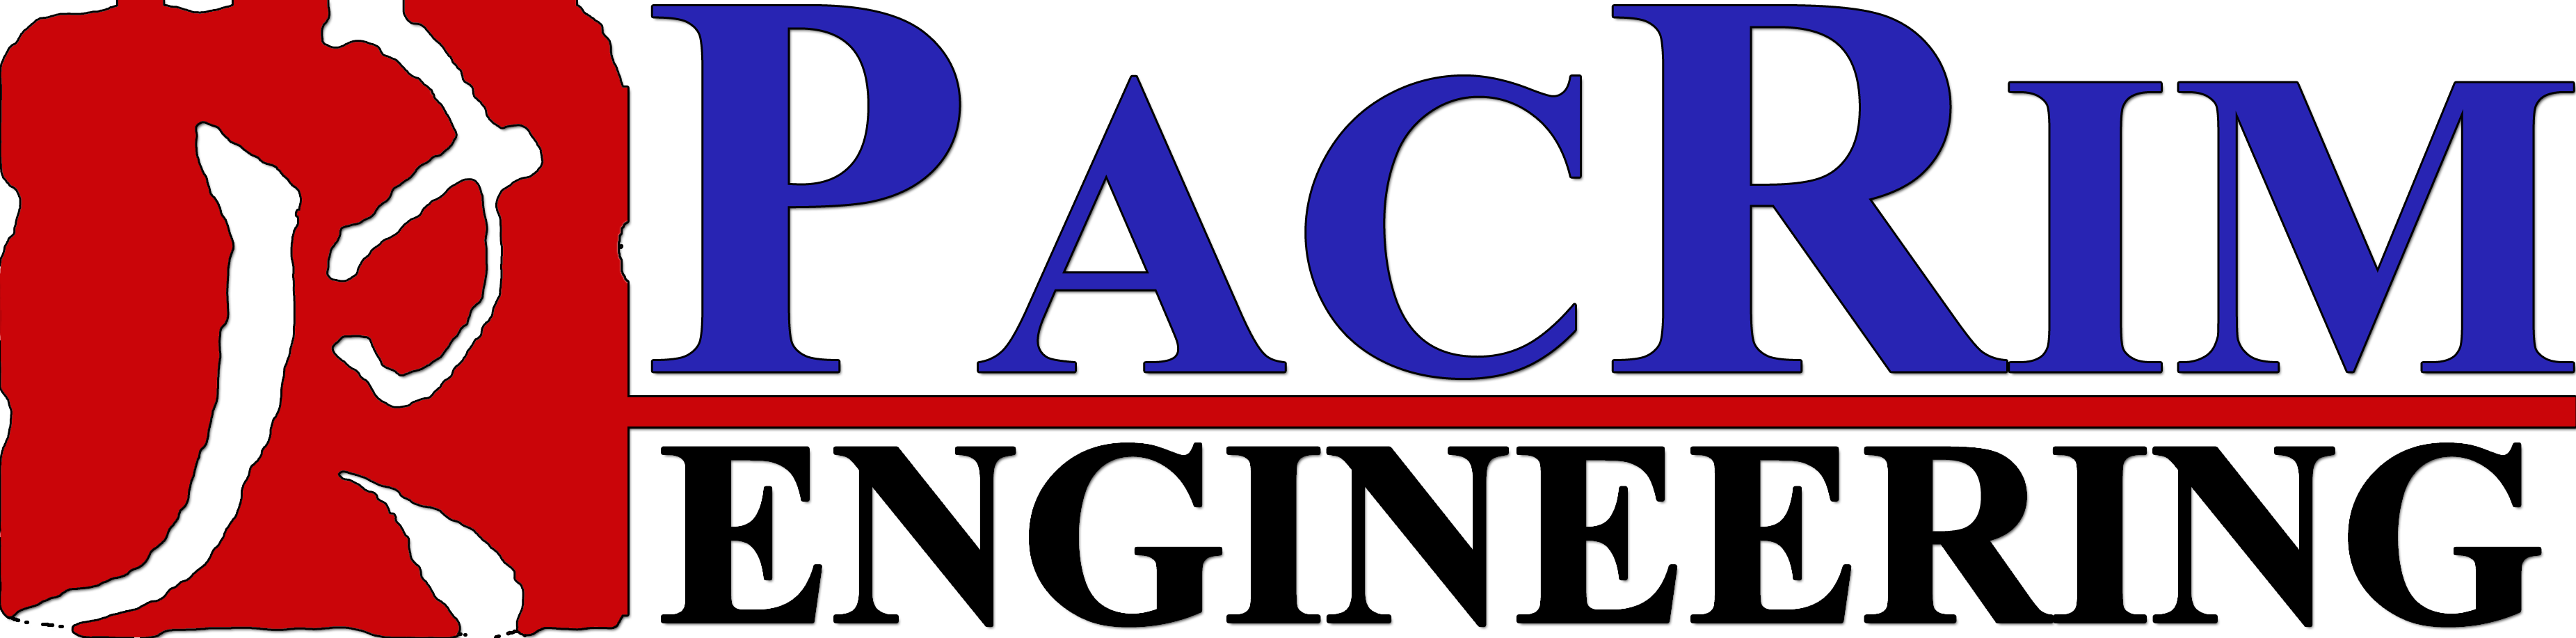 PacRim Engineering, Inc.